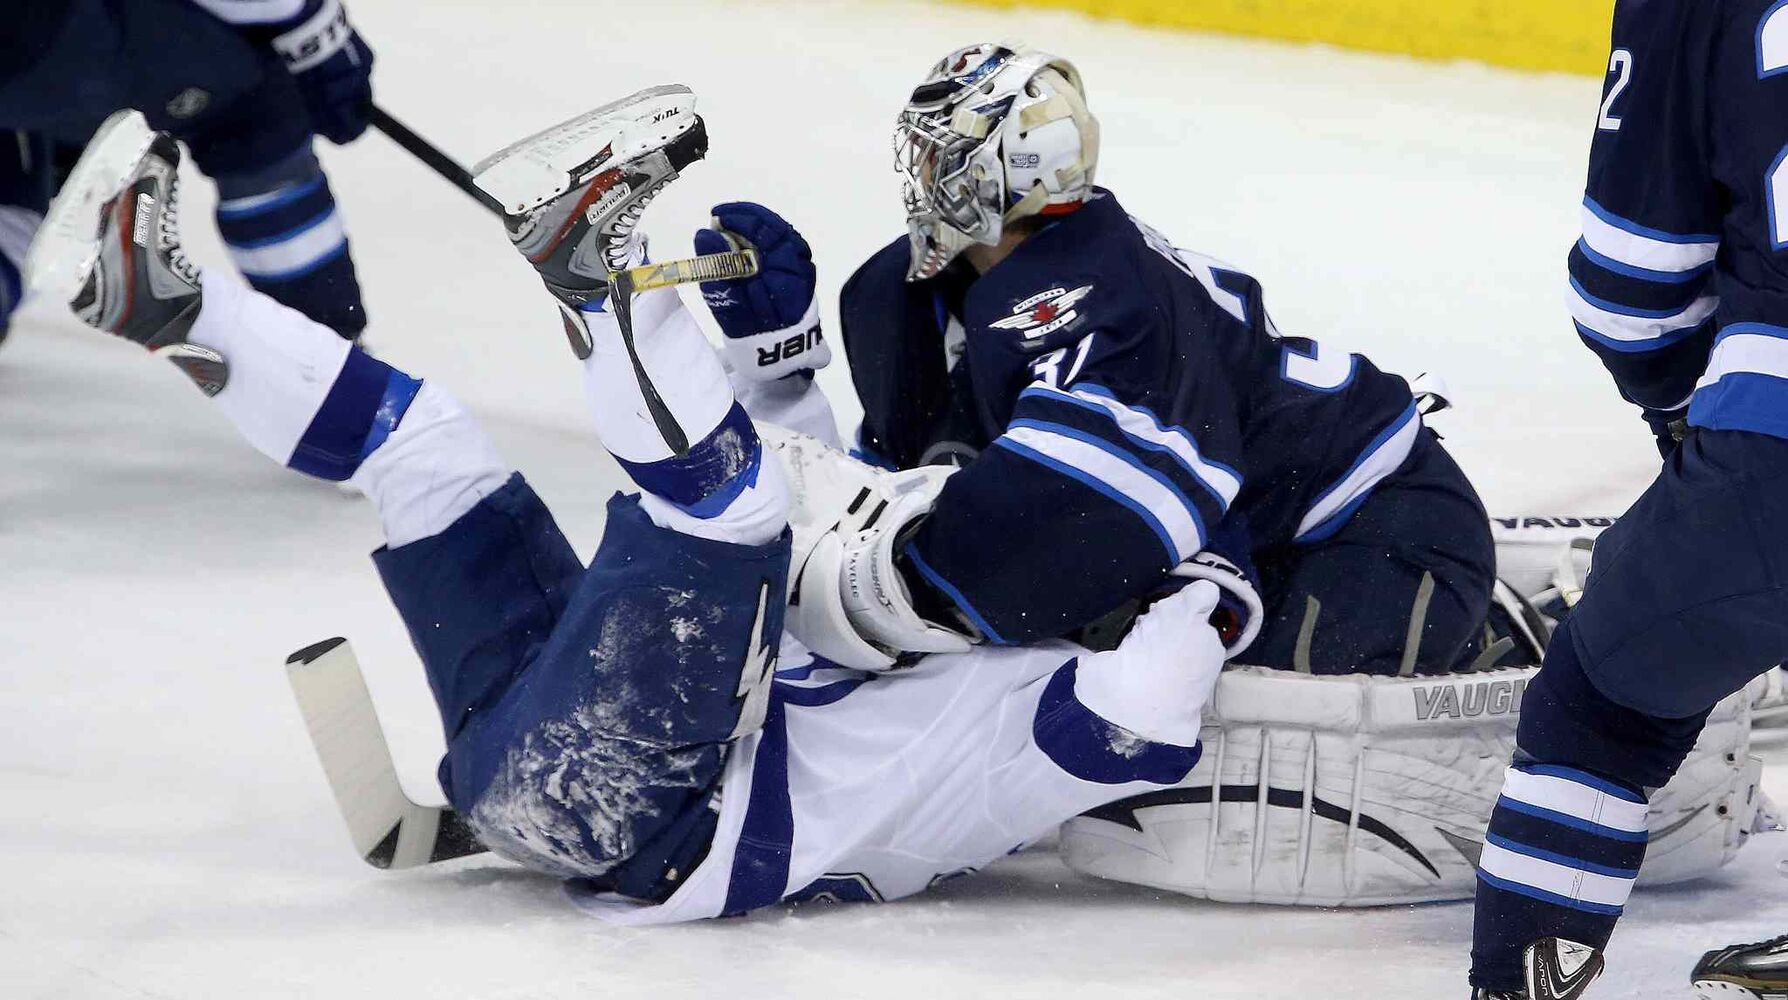 Tampa Bay Lightning's Martin St. Louis (26) is smothered by Winnipeg Jets' goaltender Ondrej Pavelec (31) during the first period.